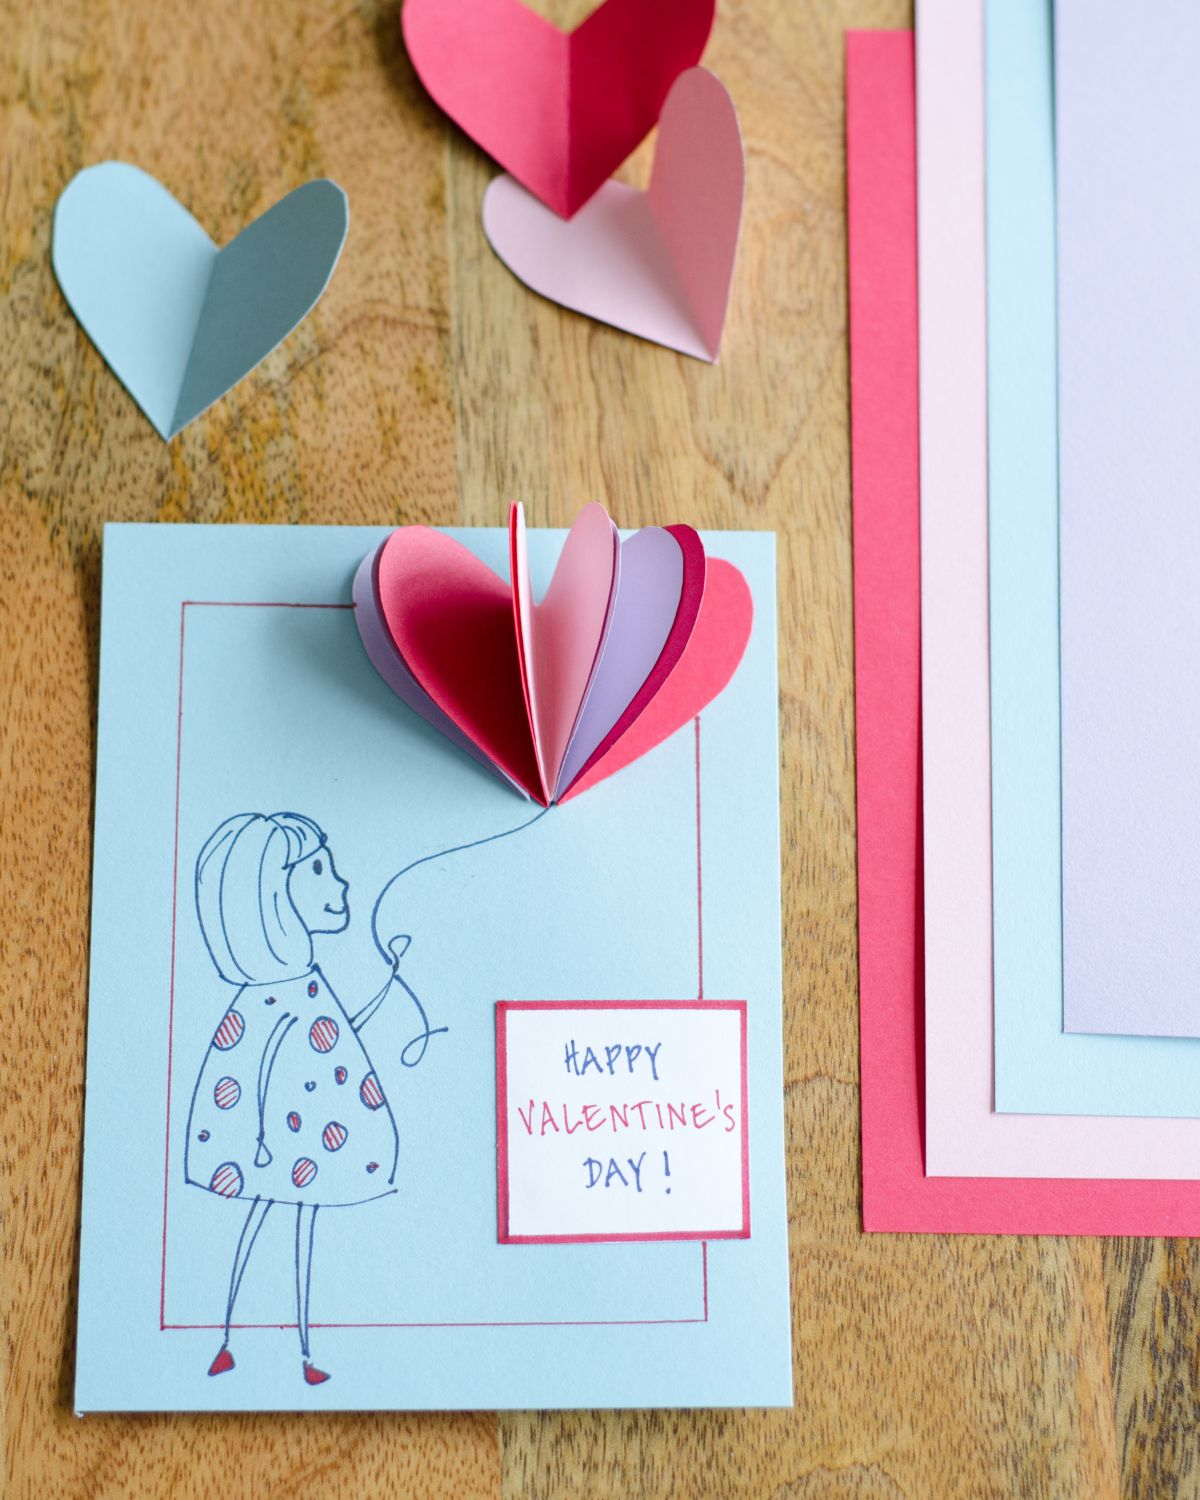 Easy diy valentines cards using simple folded paper hearts diy